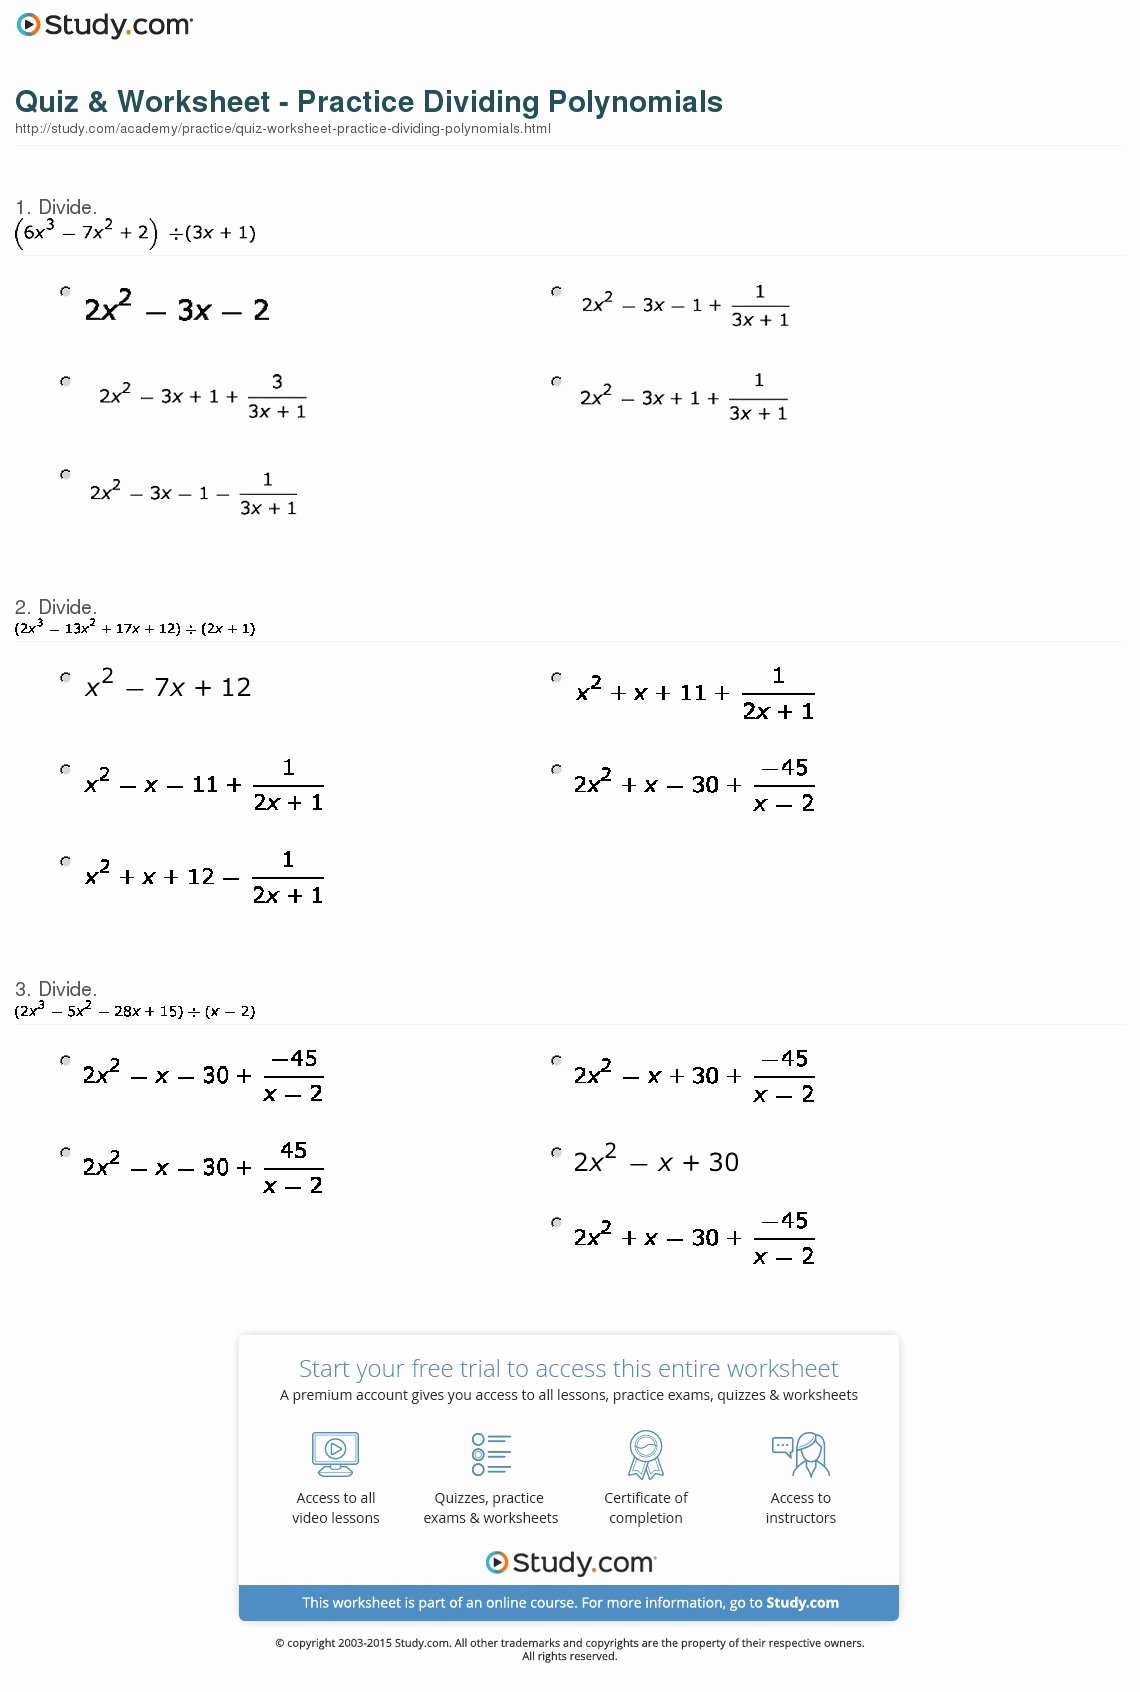 Long Division Polynomials Worksheet Awesome Quiz & Worksheet Practice Dividing Polynomials